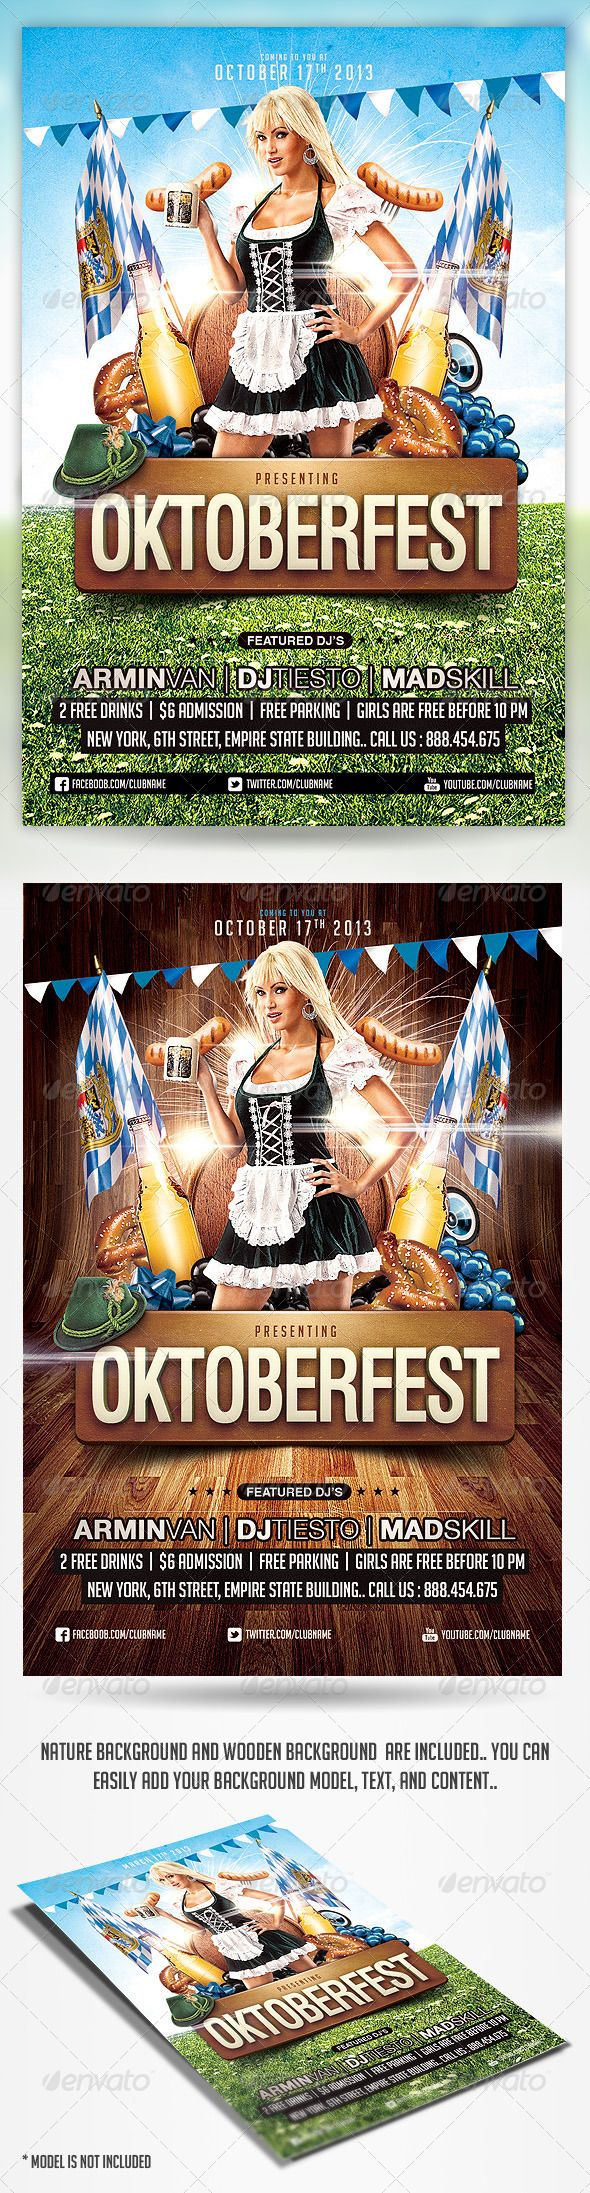 best images about party design flyers dj party oktoberfest party flyer template